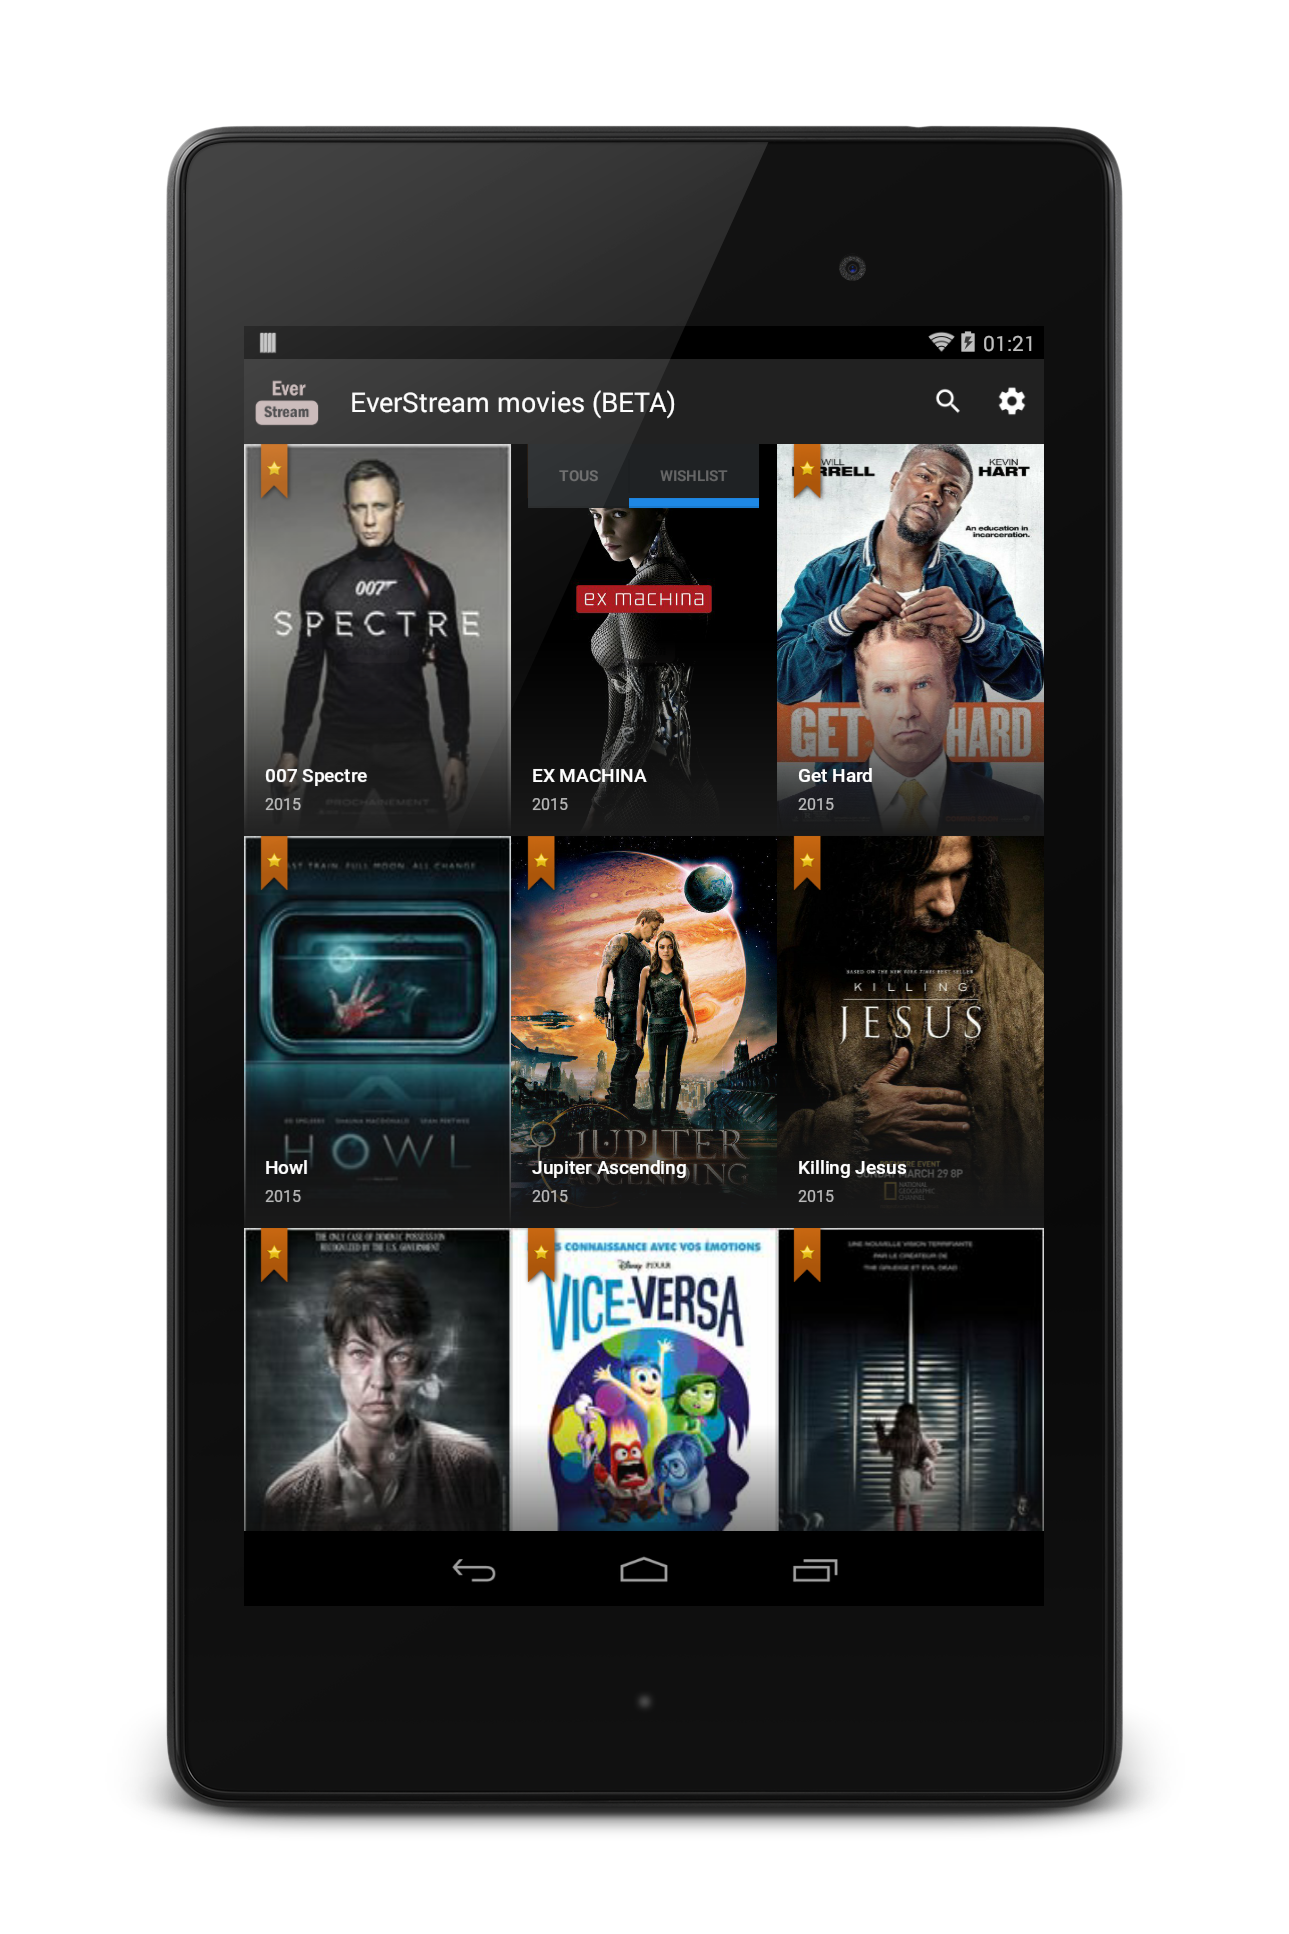 everstream movies ios